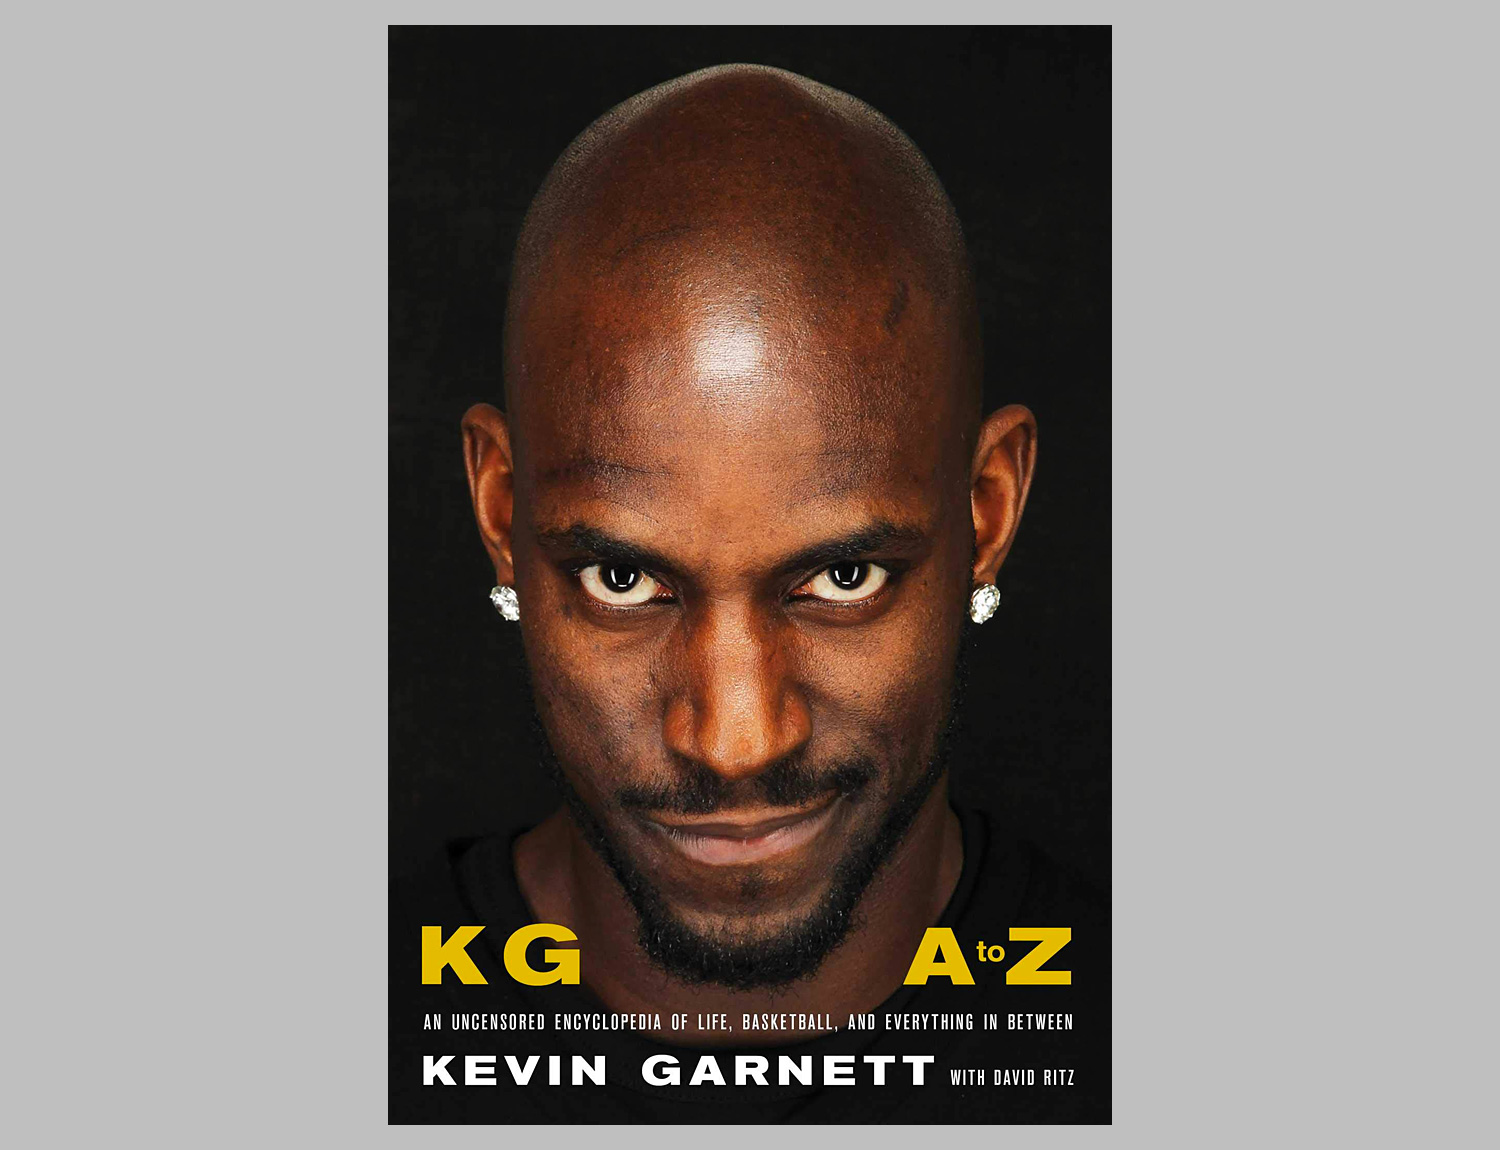 KG: A to Z: An Uncensored Encyclopedia of Life, Basketball, and Everything in Between at werd.com